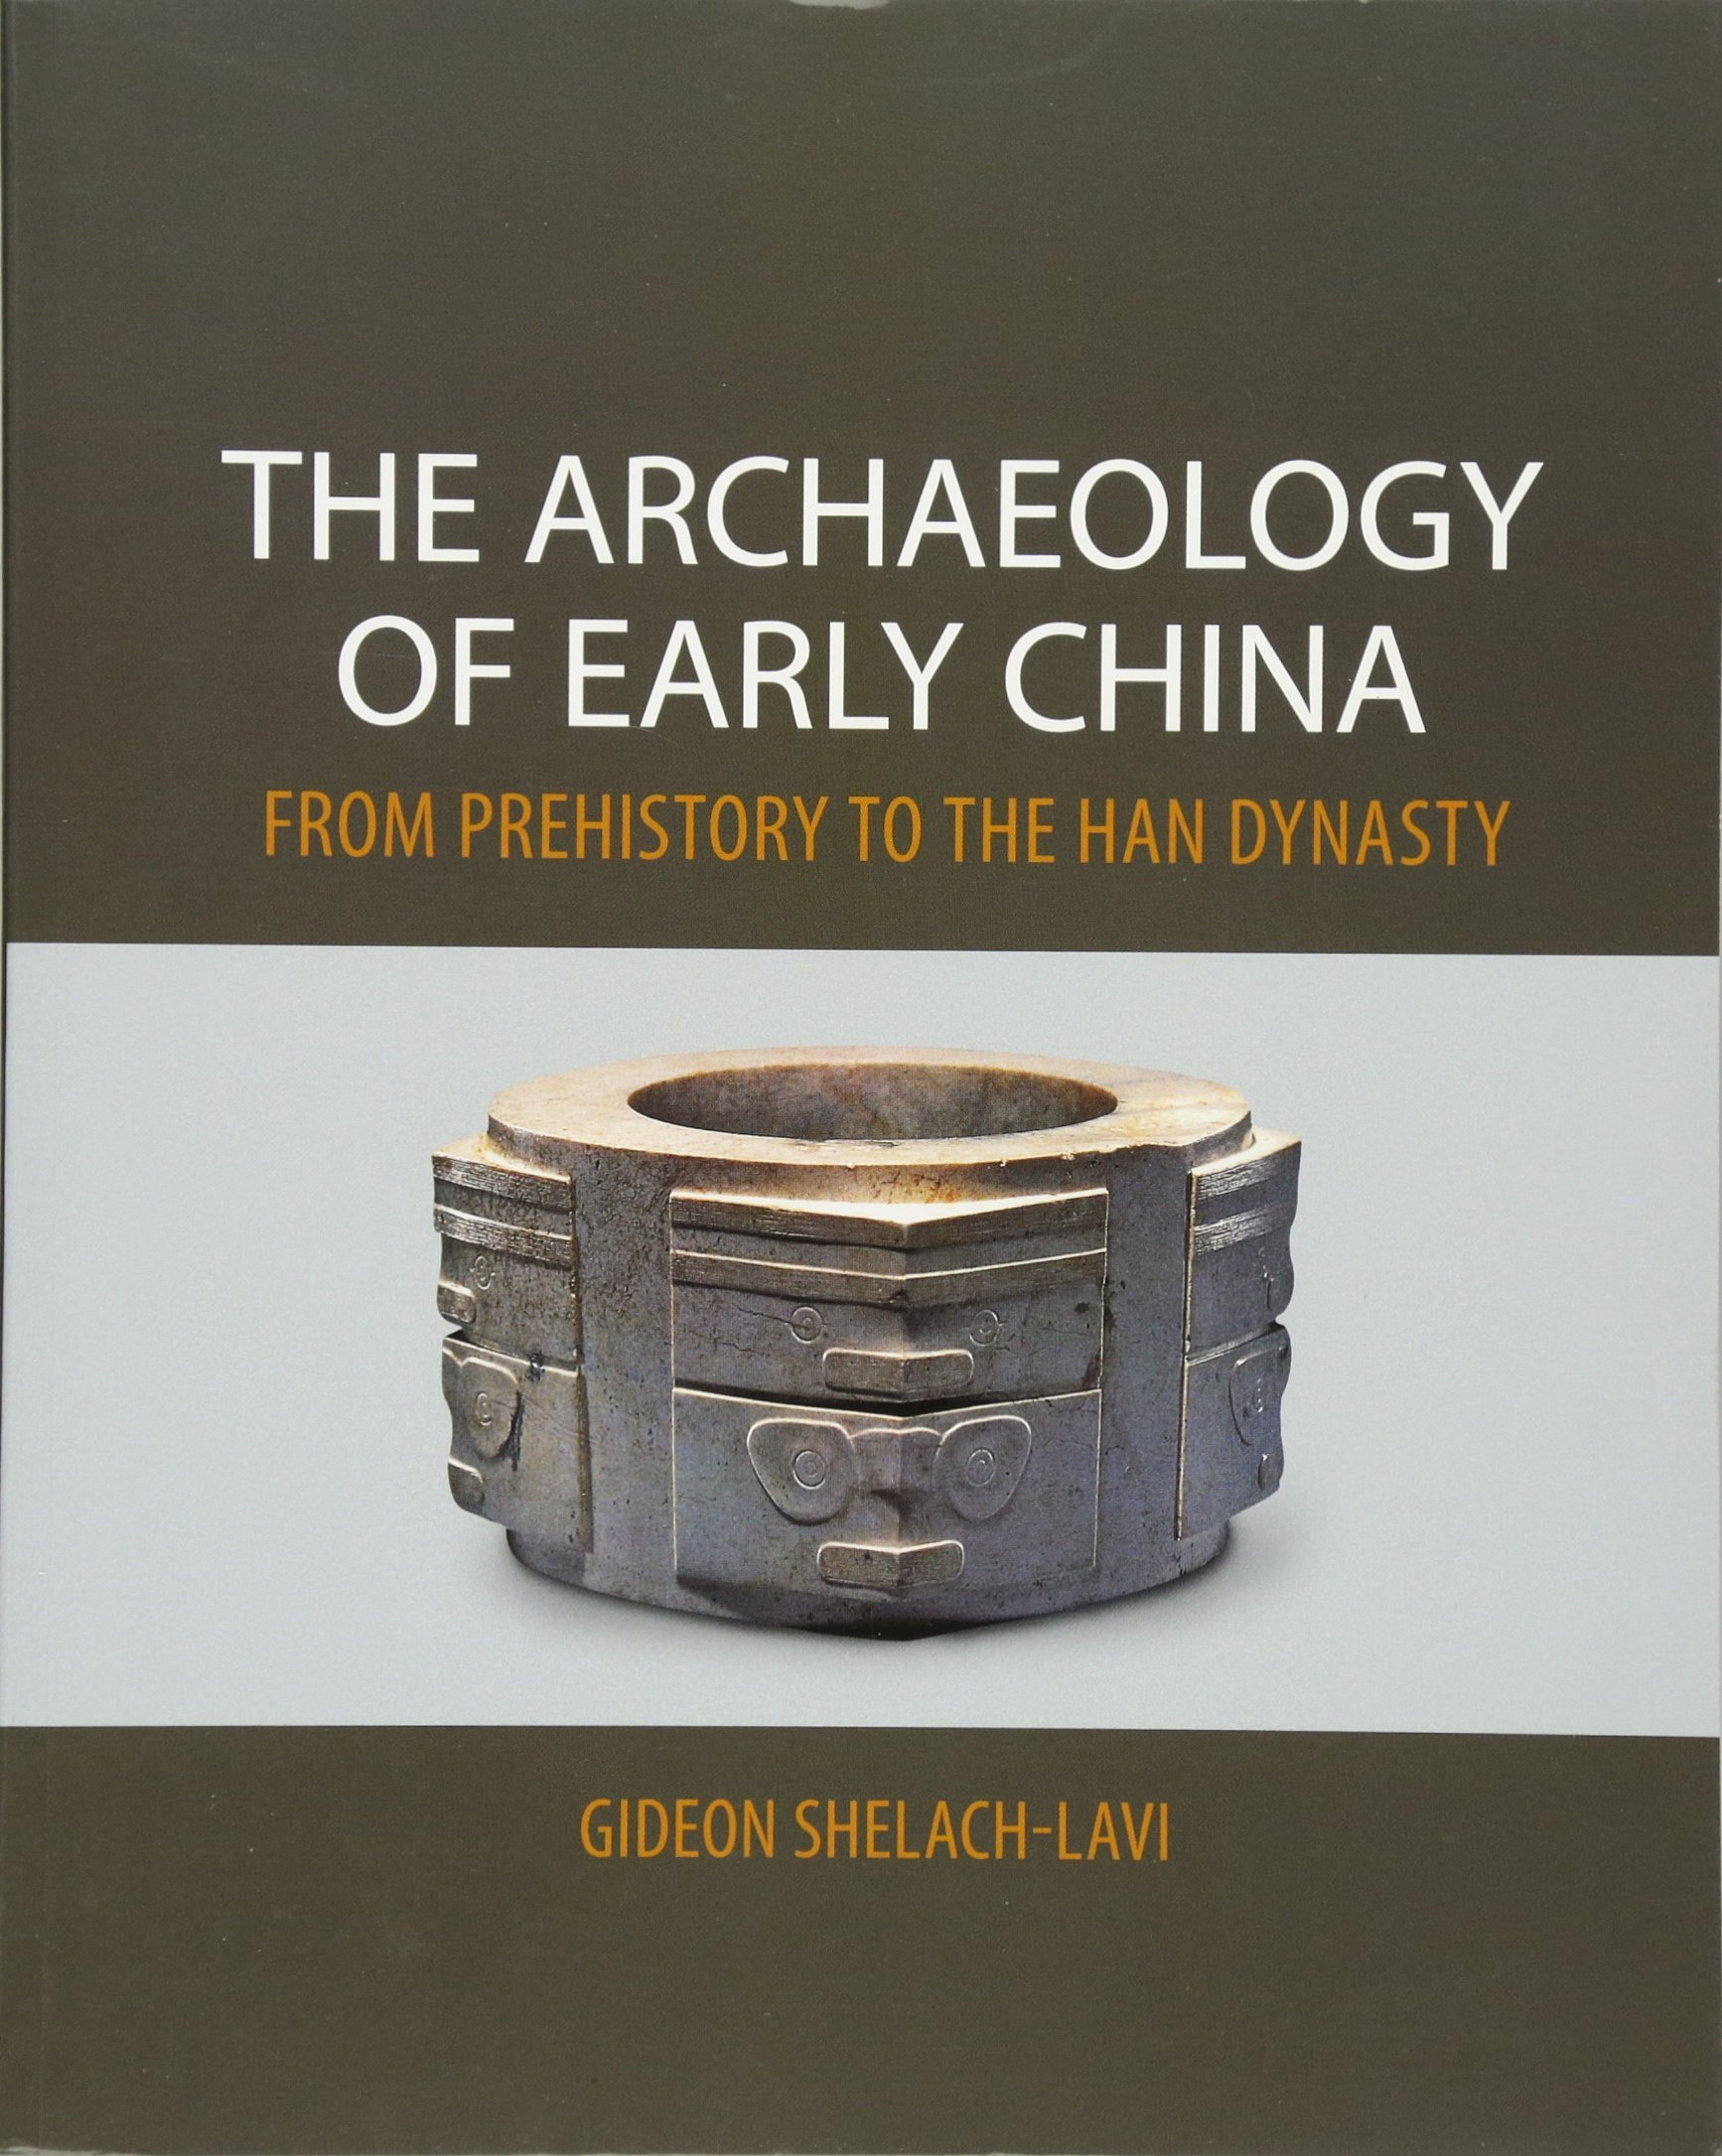 Download The Archaeology of Early China: From Prehistory to the Han Dynasty ebook